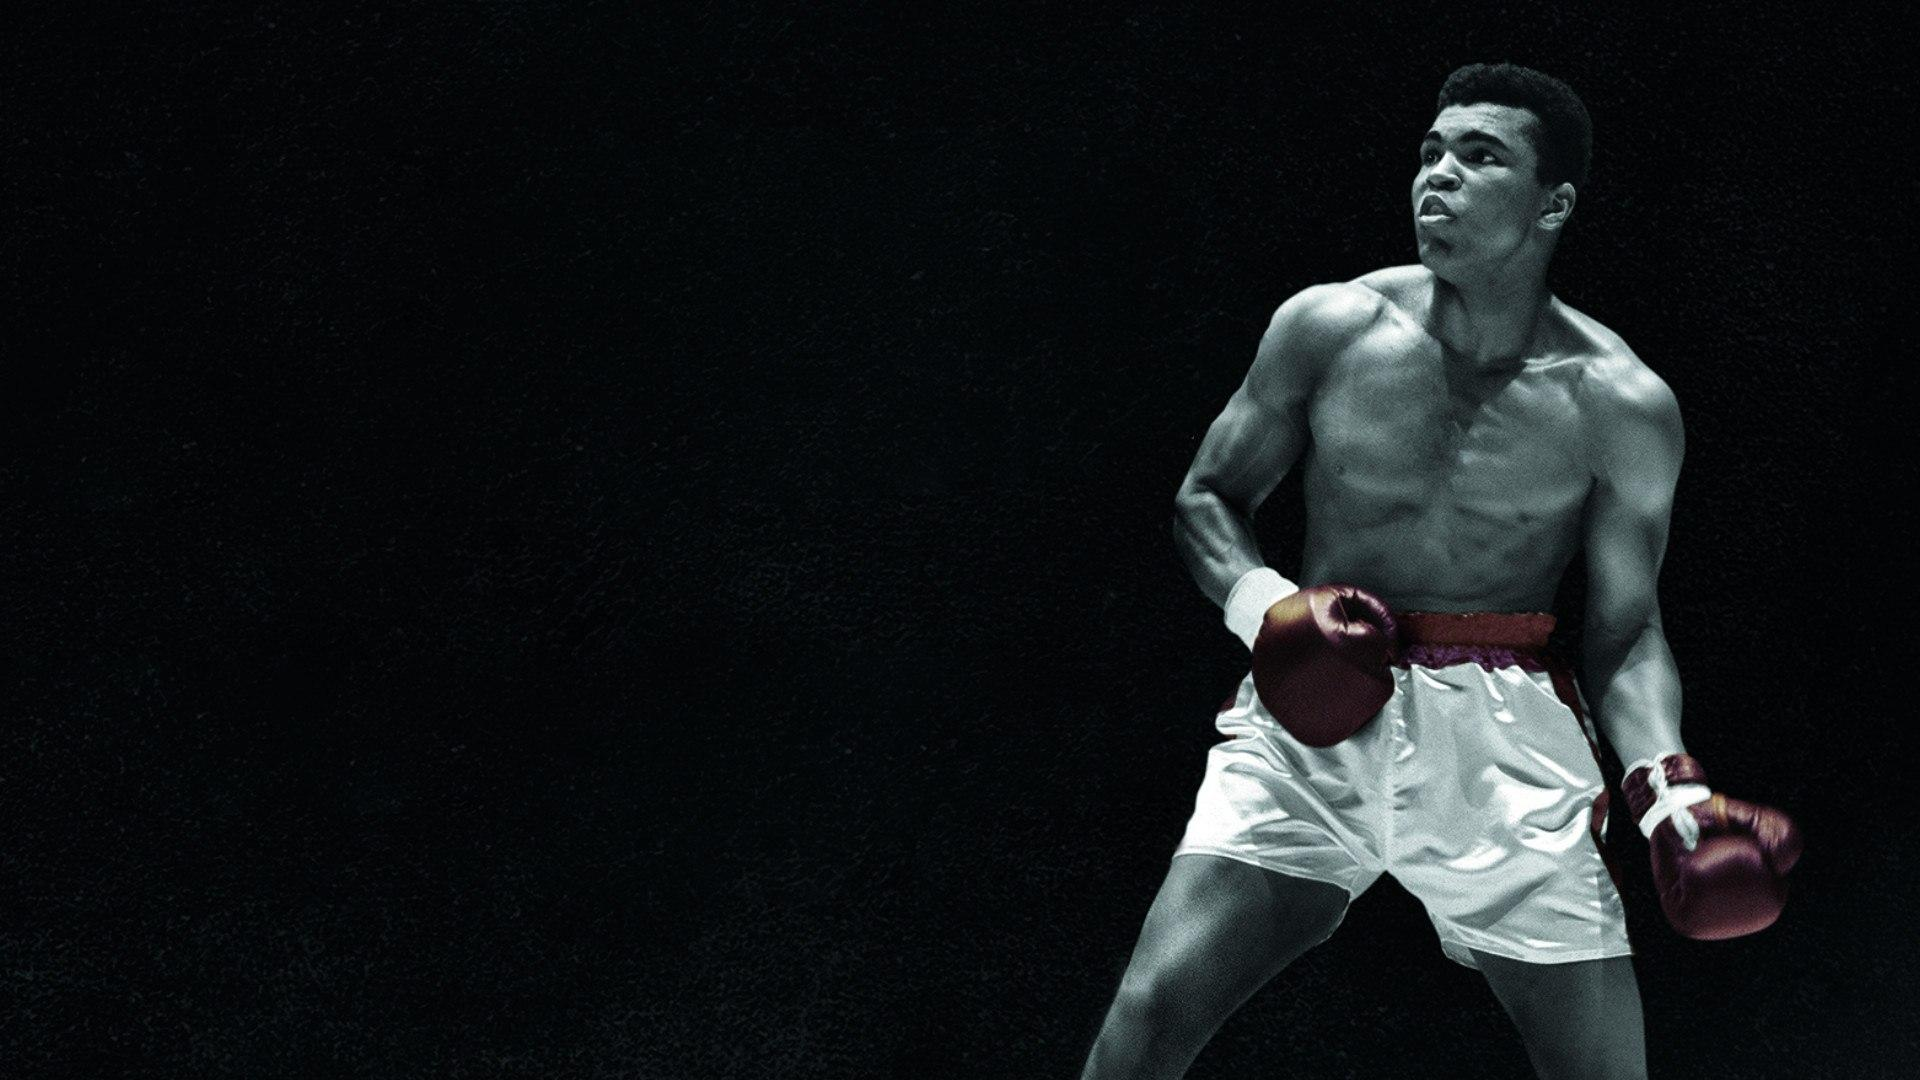 Sky Arte HD What's My Name - Muhammad Ali - -